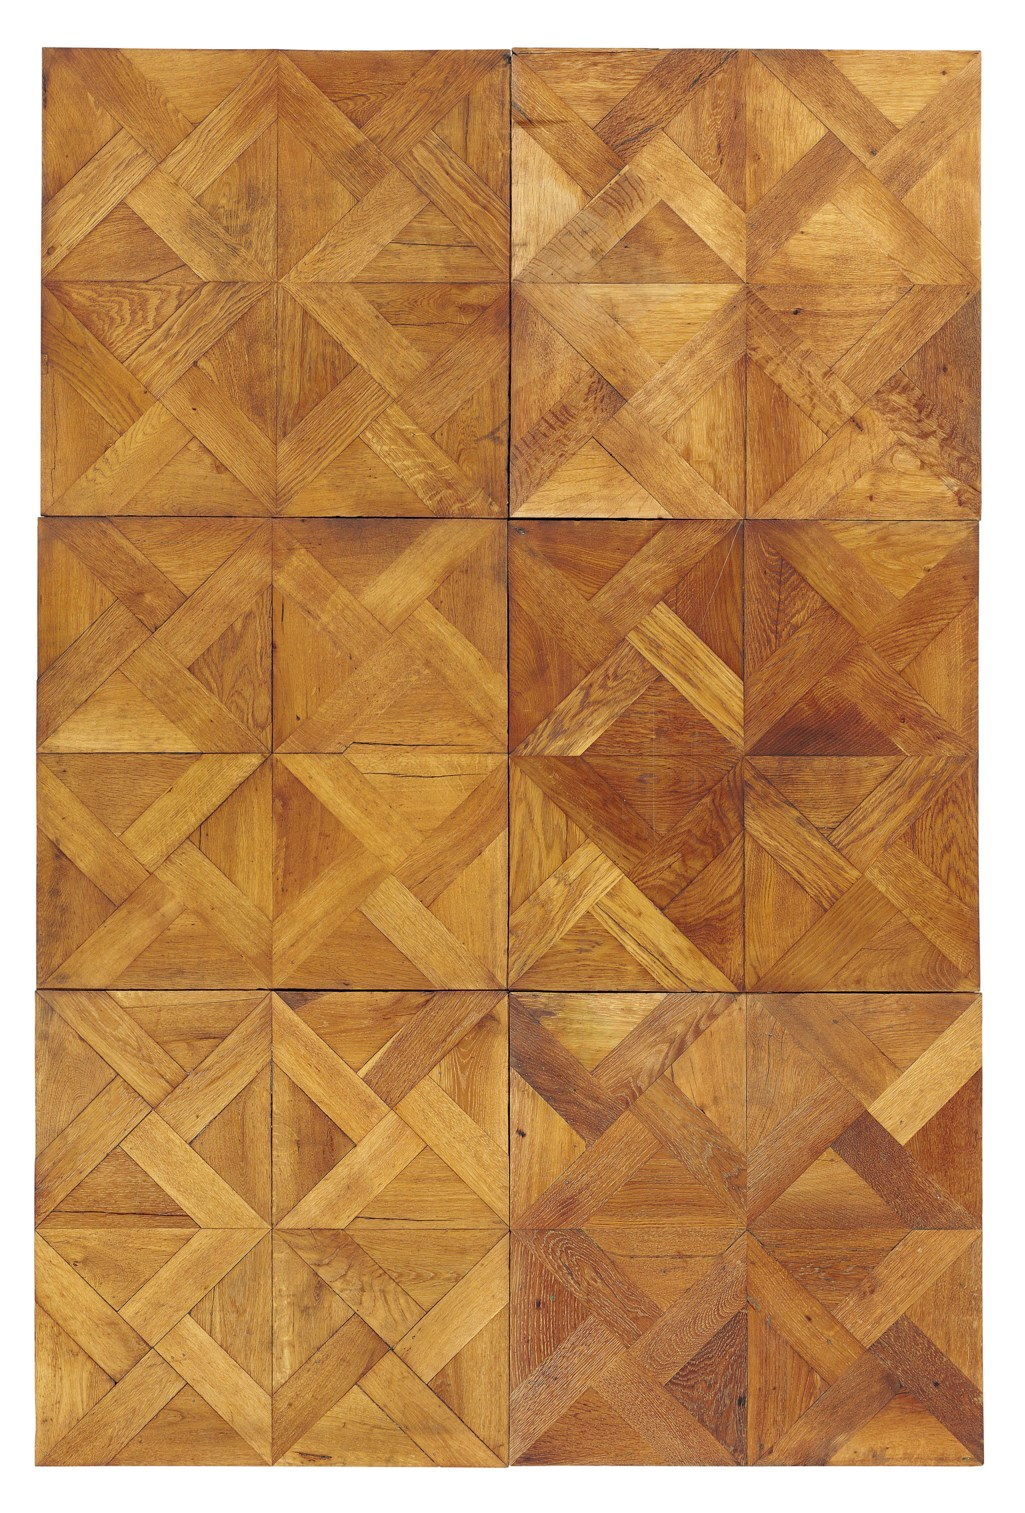 AN ITALIAN OAK PARQUET FLOOR